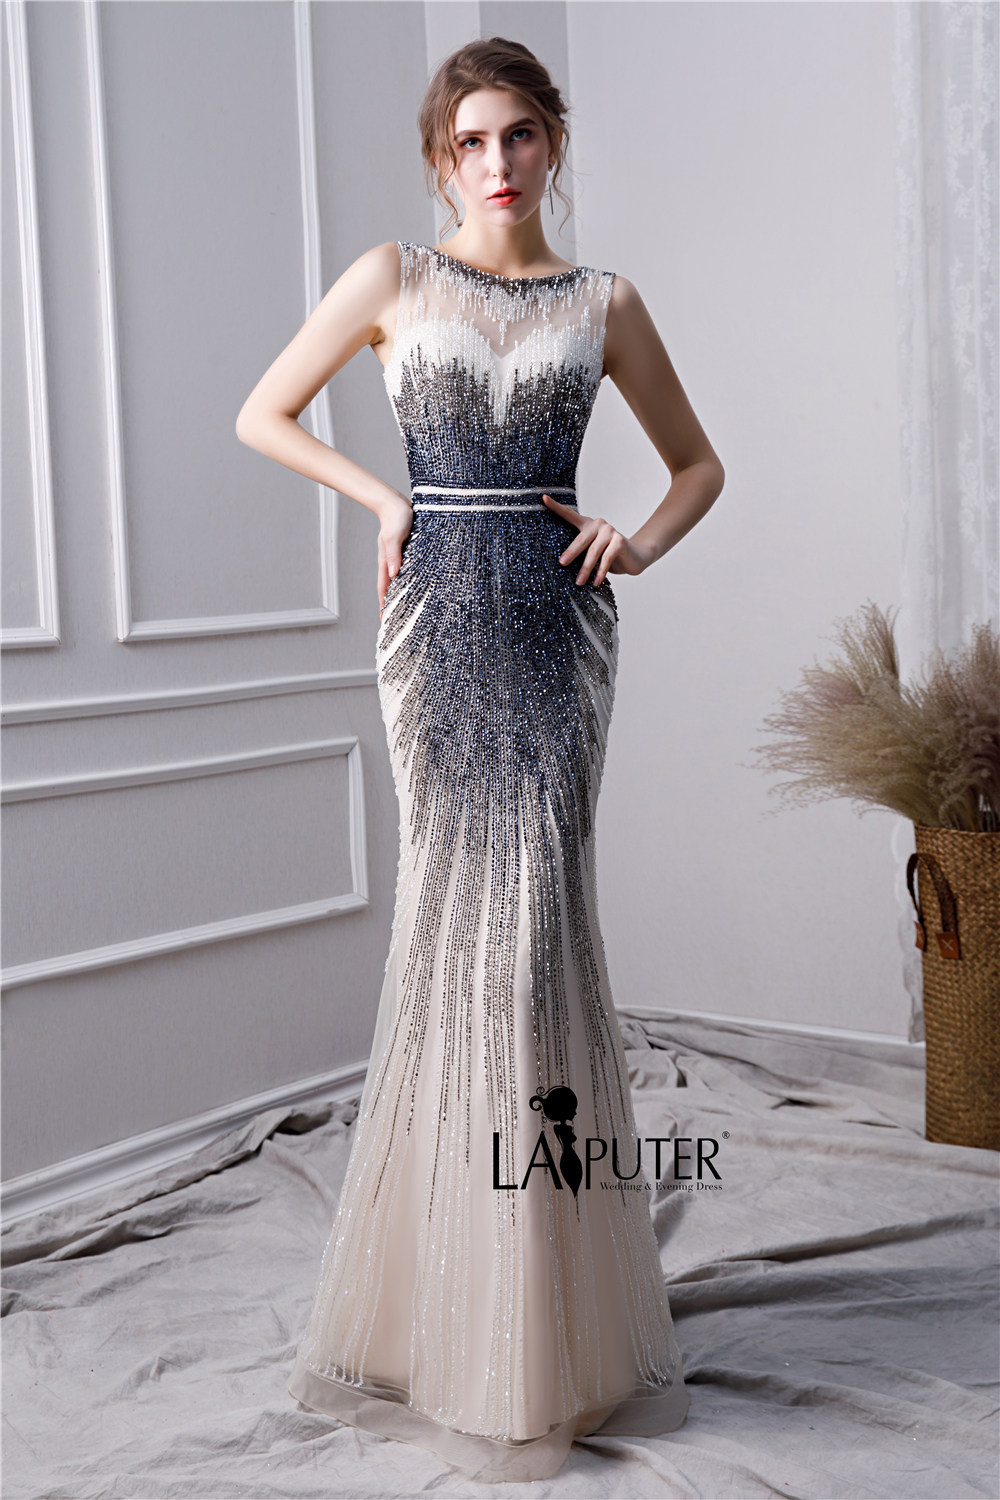 cce940a1570f5 Detail Feedback Questions about LAIPUTER 2019 New Fashion Mermaid ...